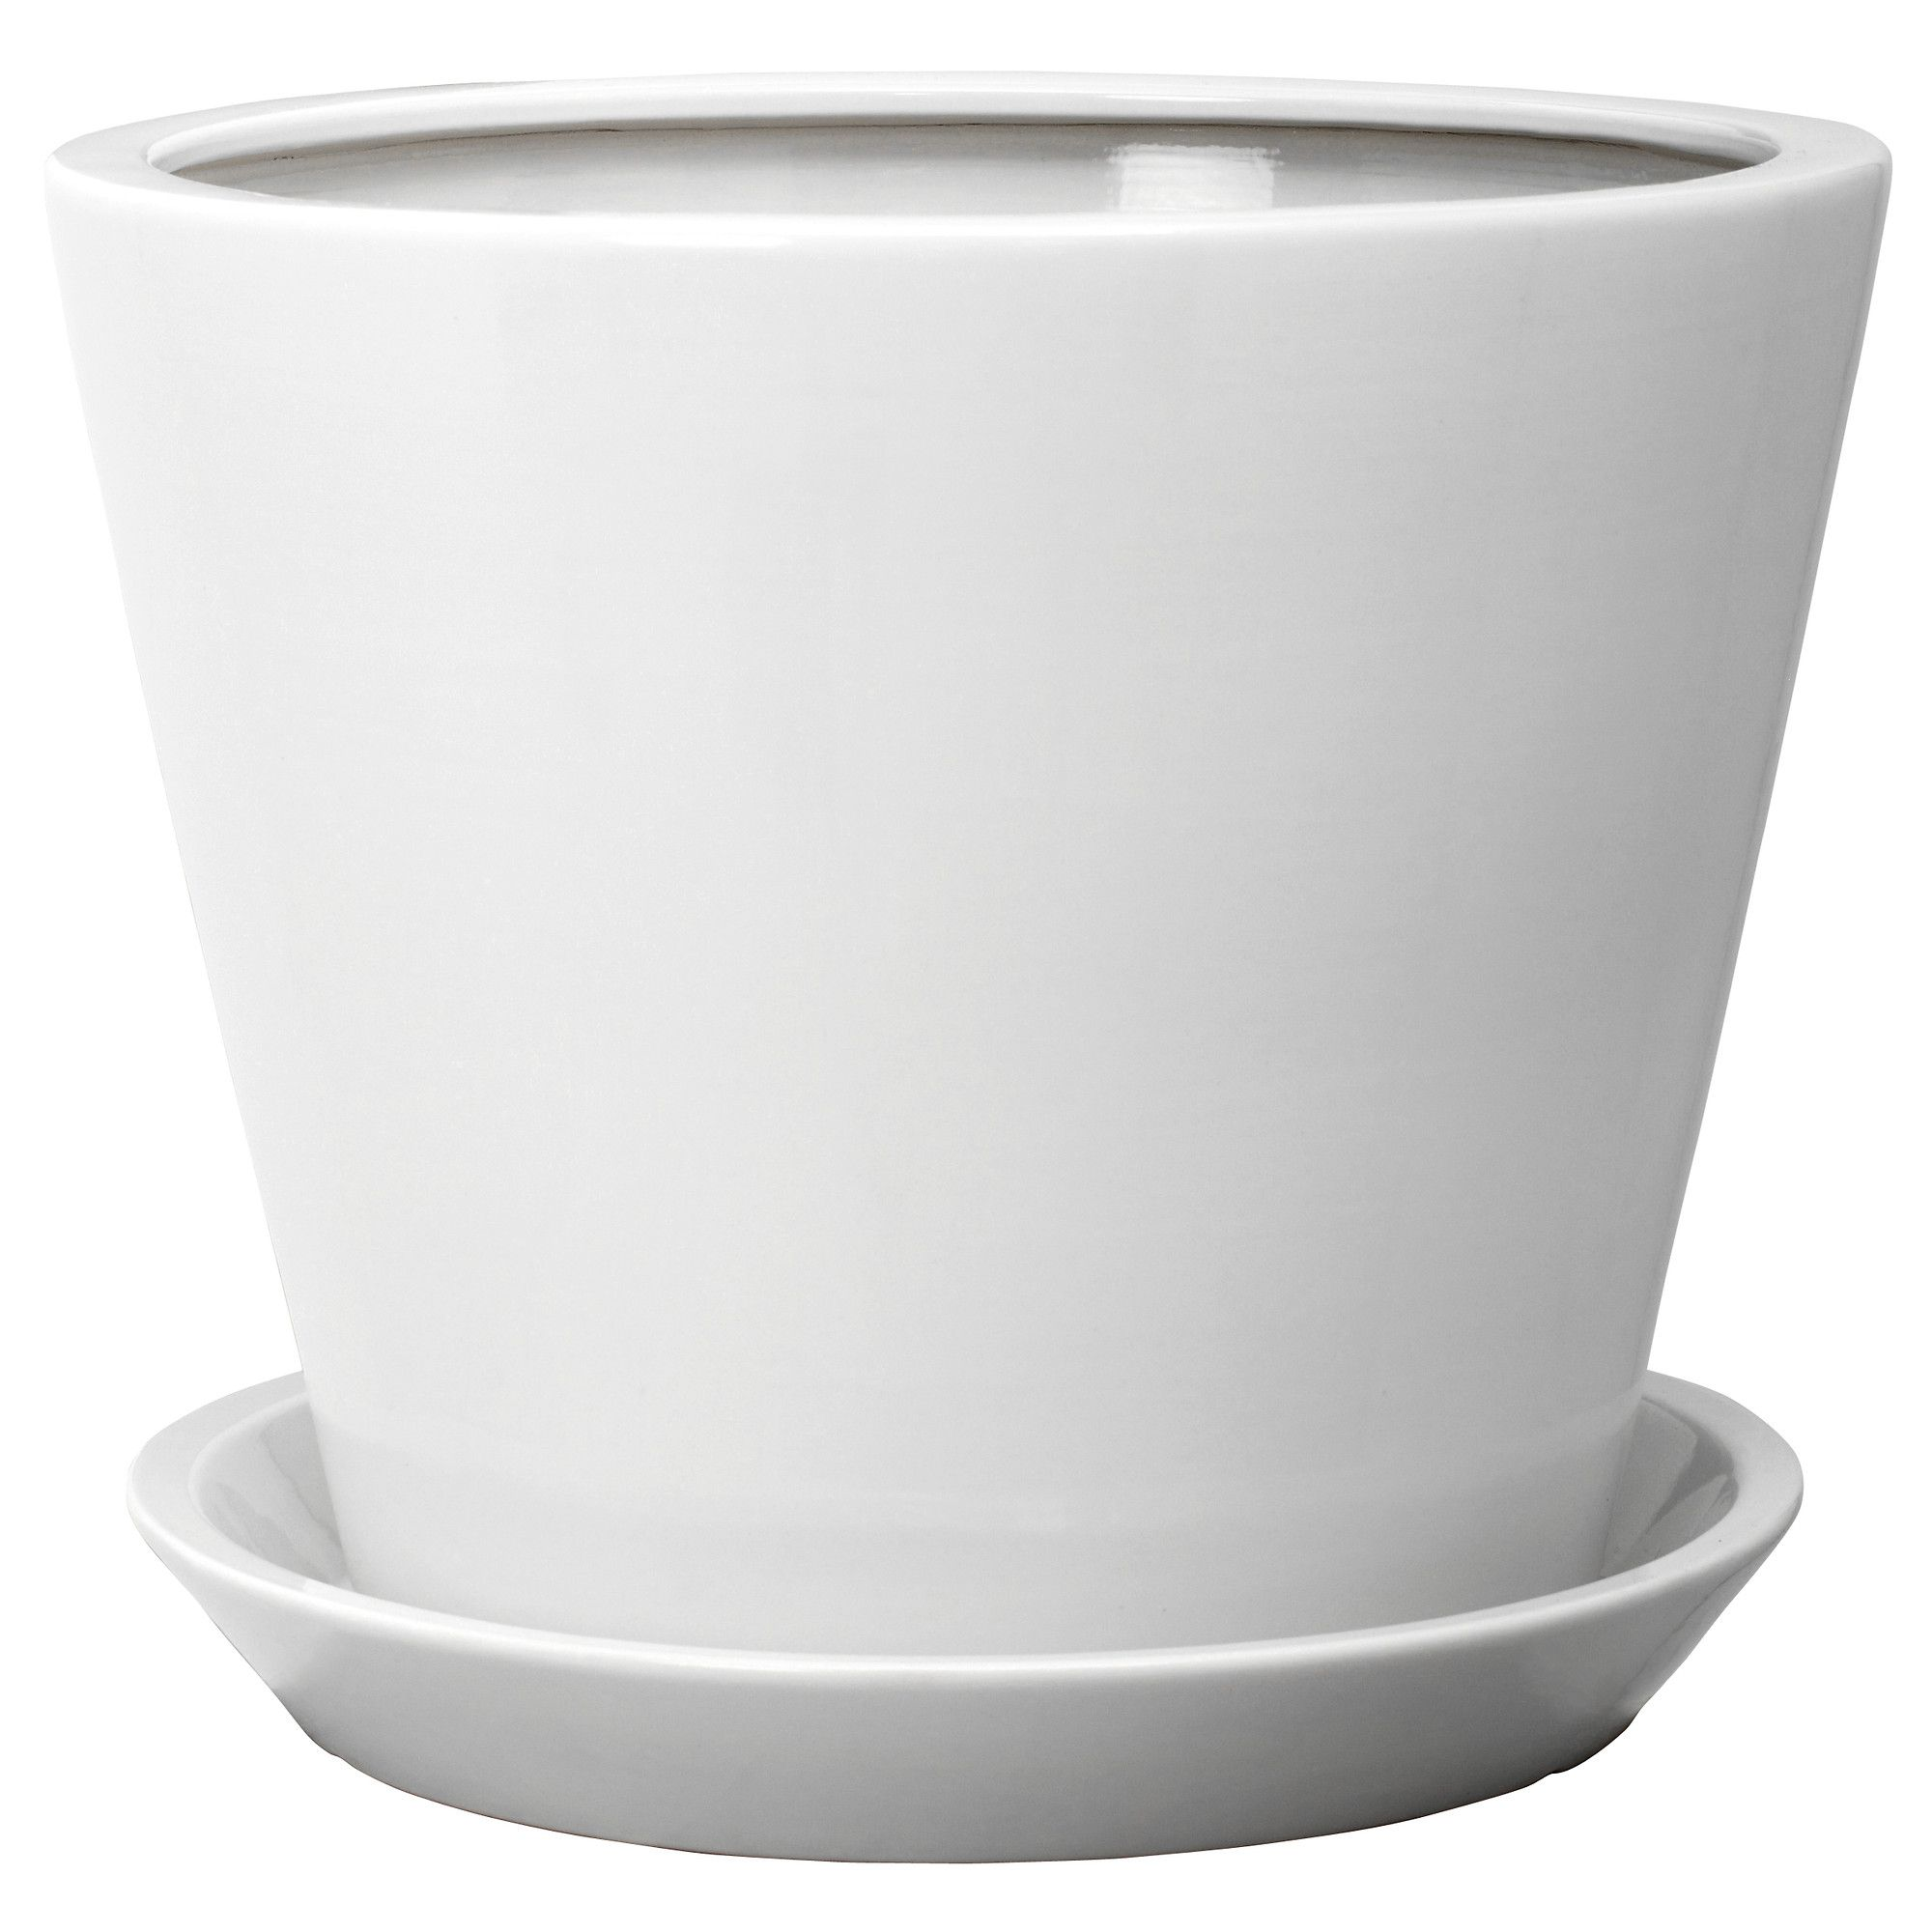 Ikea Planters Large TrossÖ Plant Pot With Saucer Ikea Depending On The